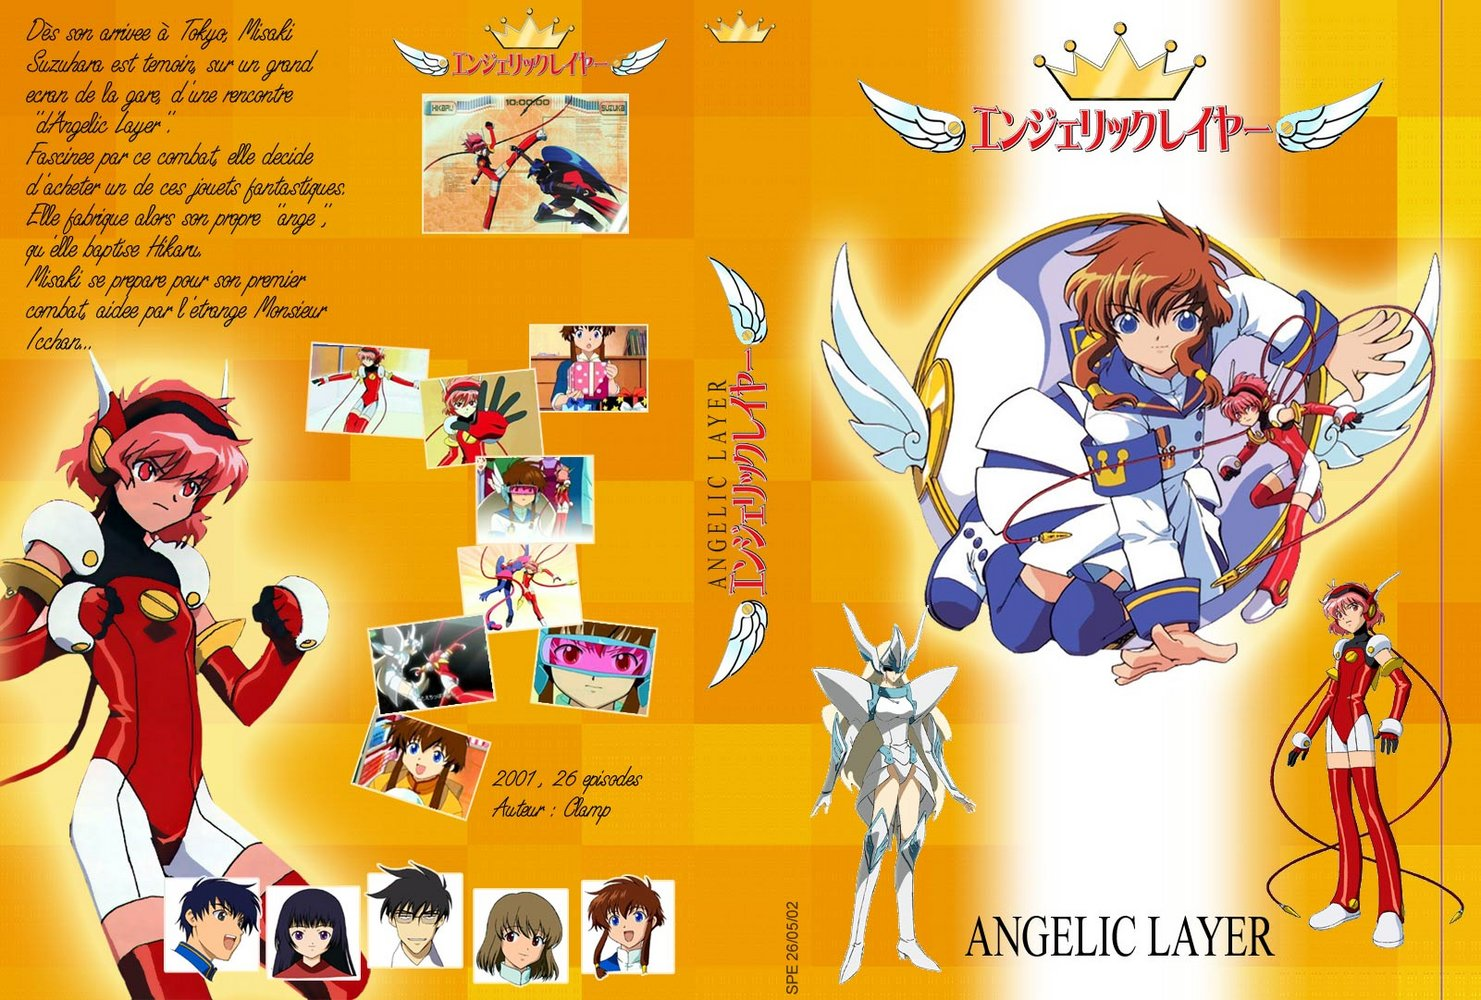 Jaquette DVD Angelic Layer